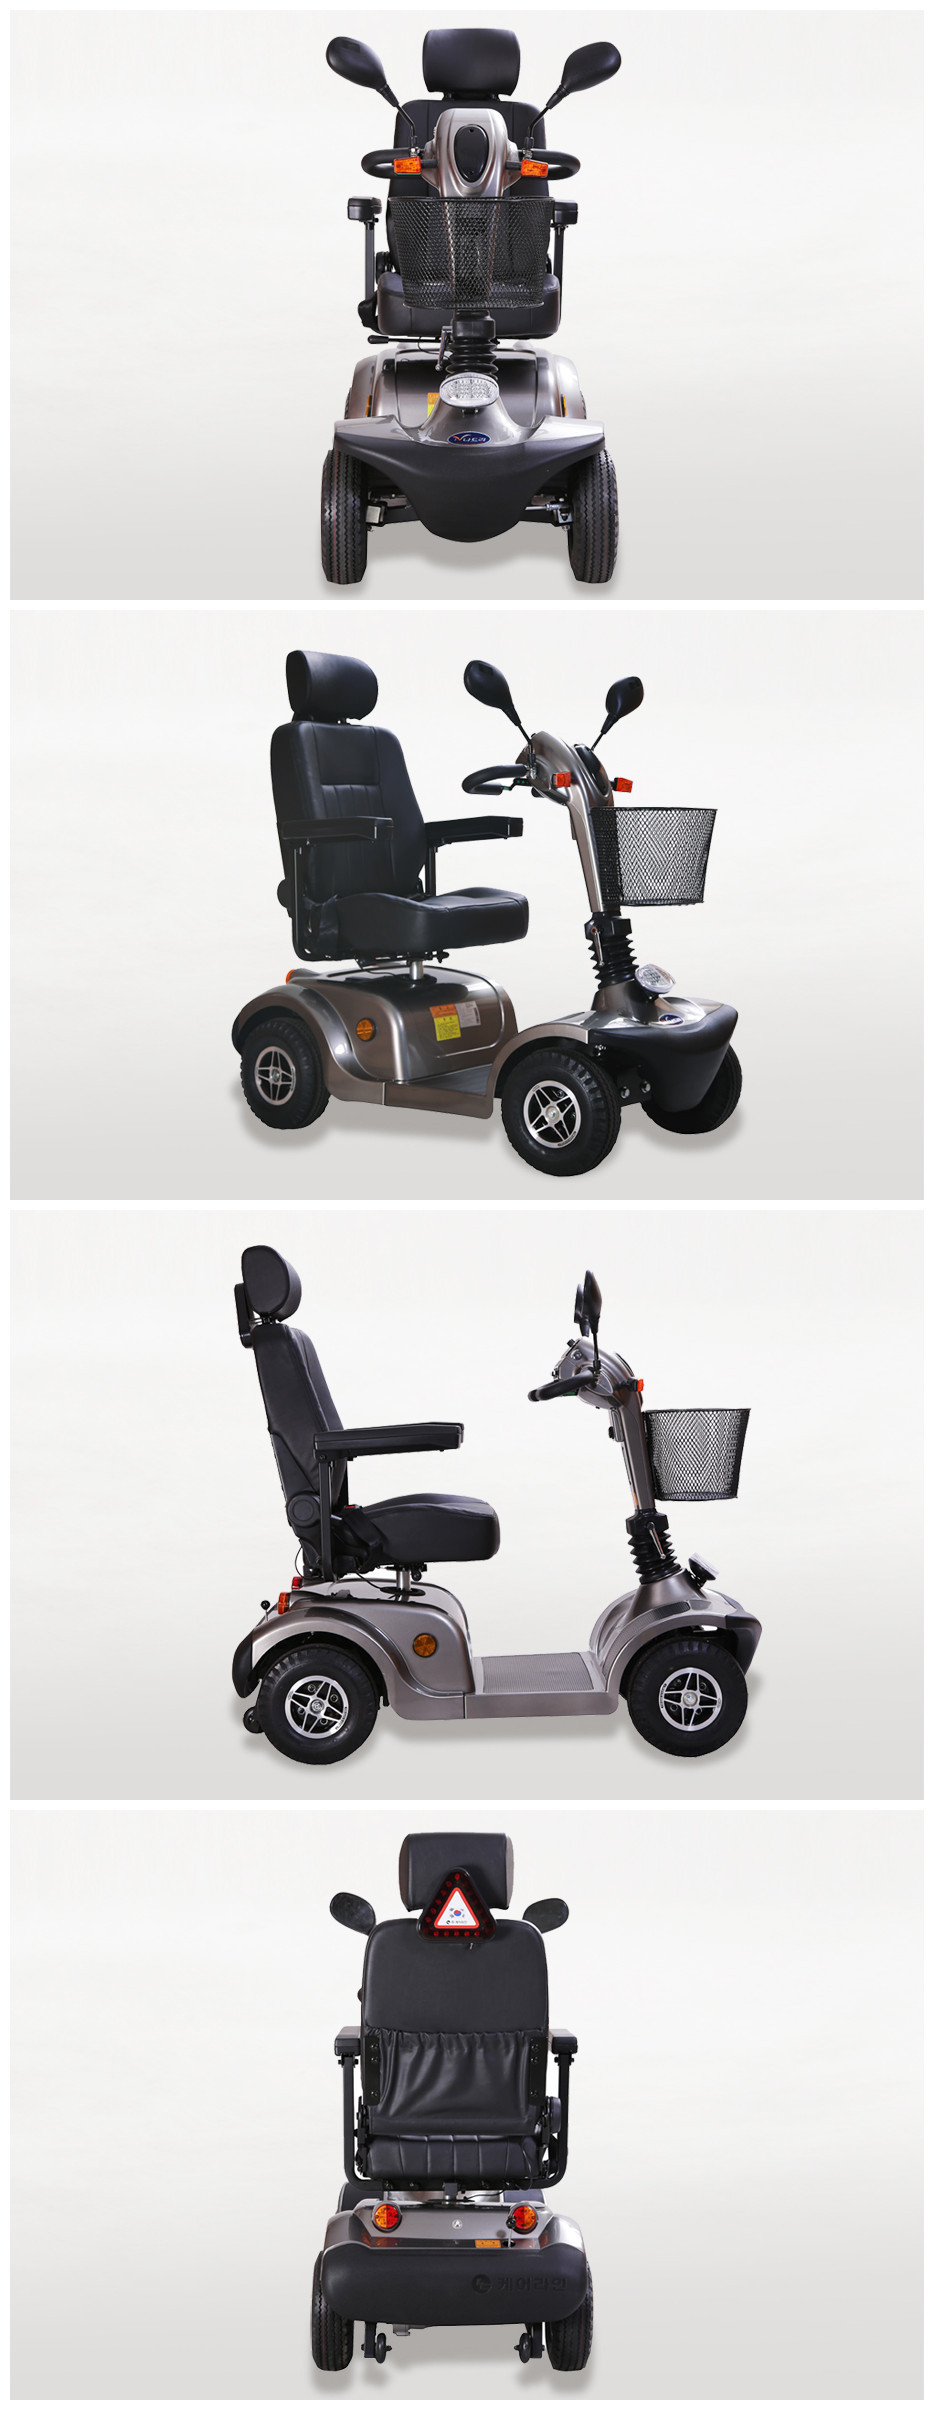 handicaped scooter for disabled man involving in social life